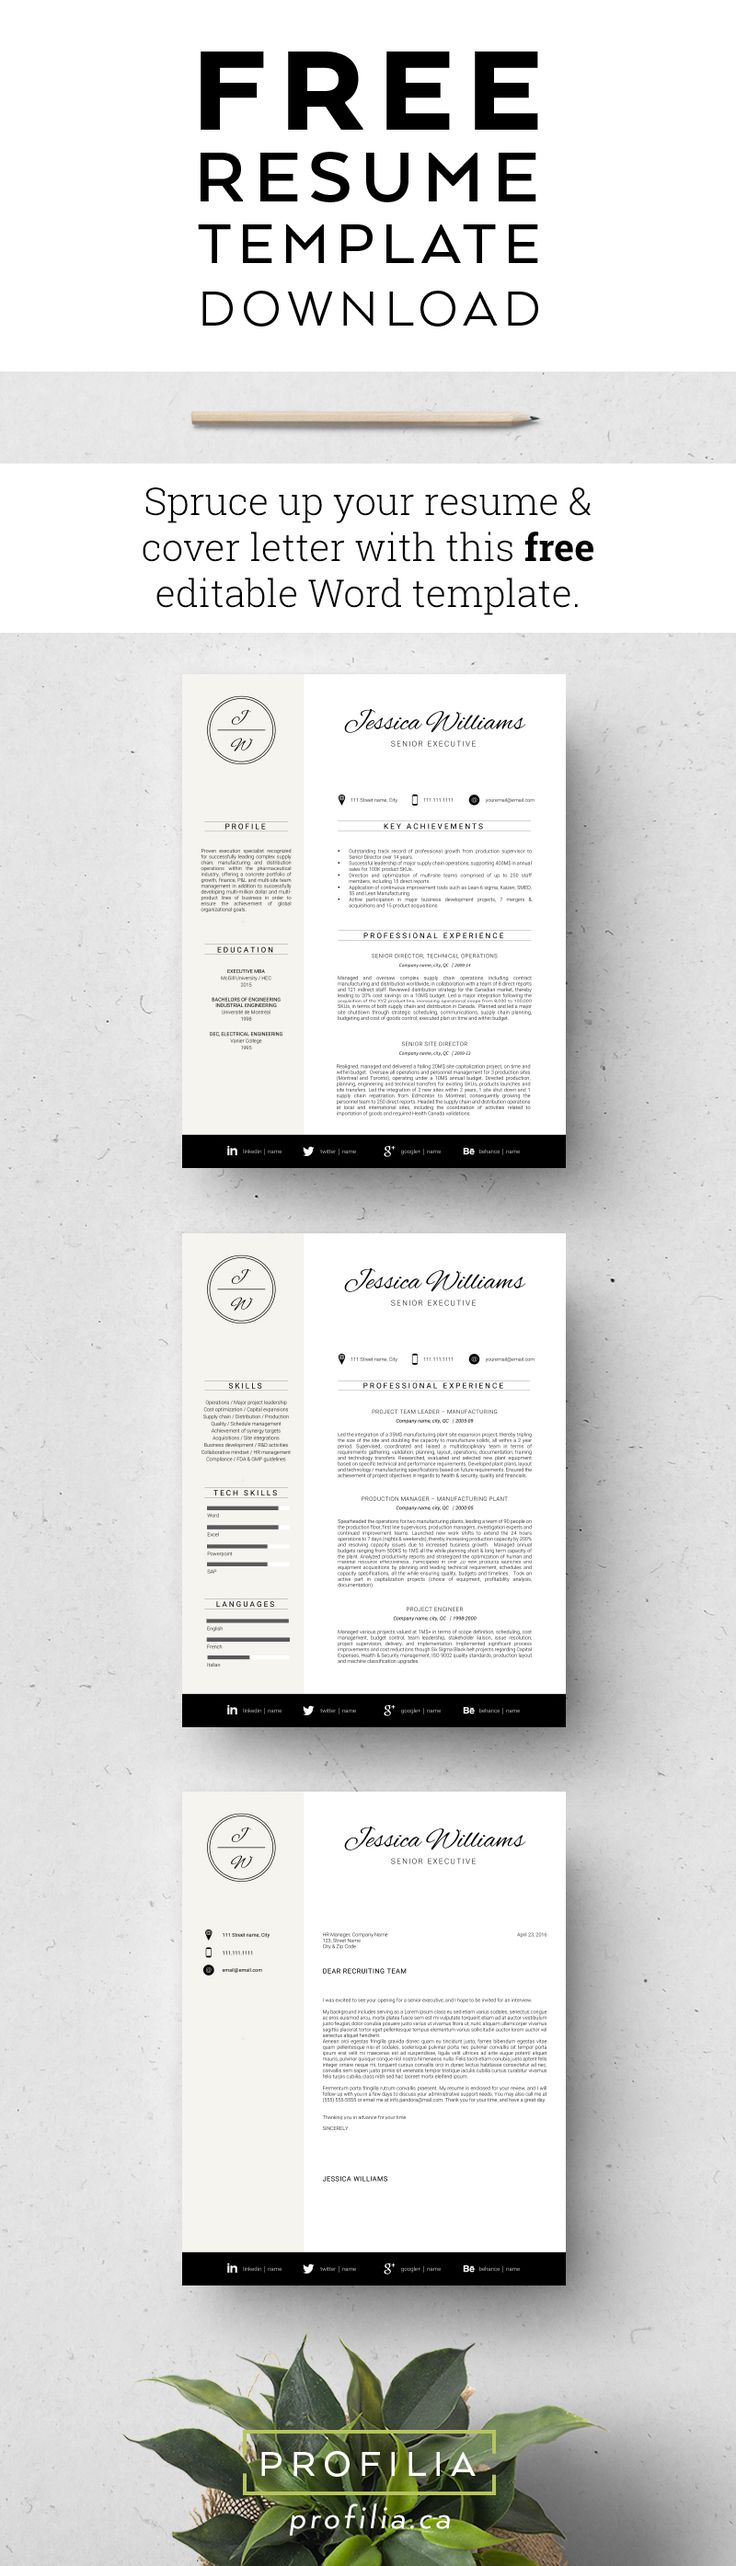 Free Resume Template   Refresh Your Job Search With This Free Resume U0026 Cover U2026  Free Resume And Cover Letter Builder